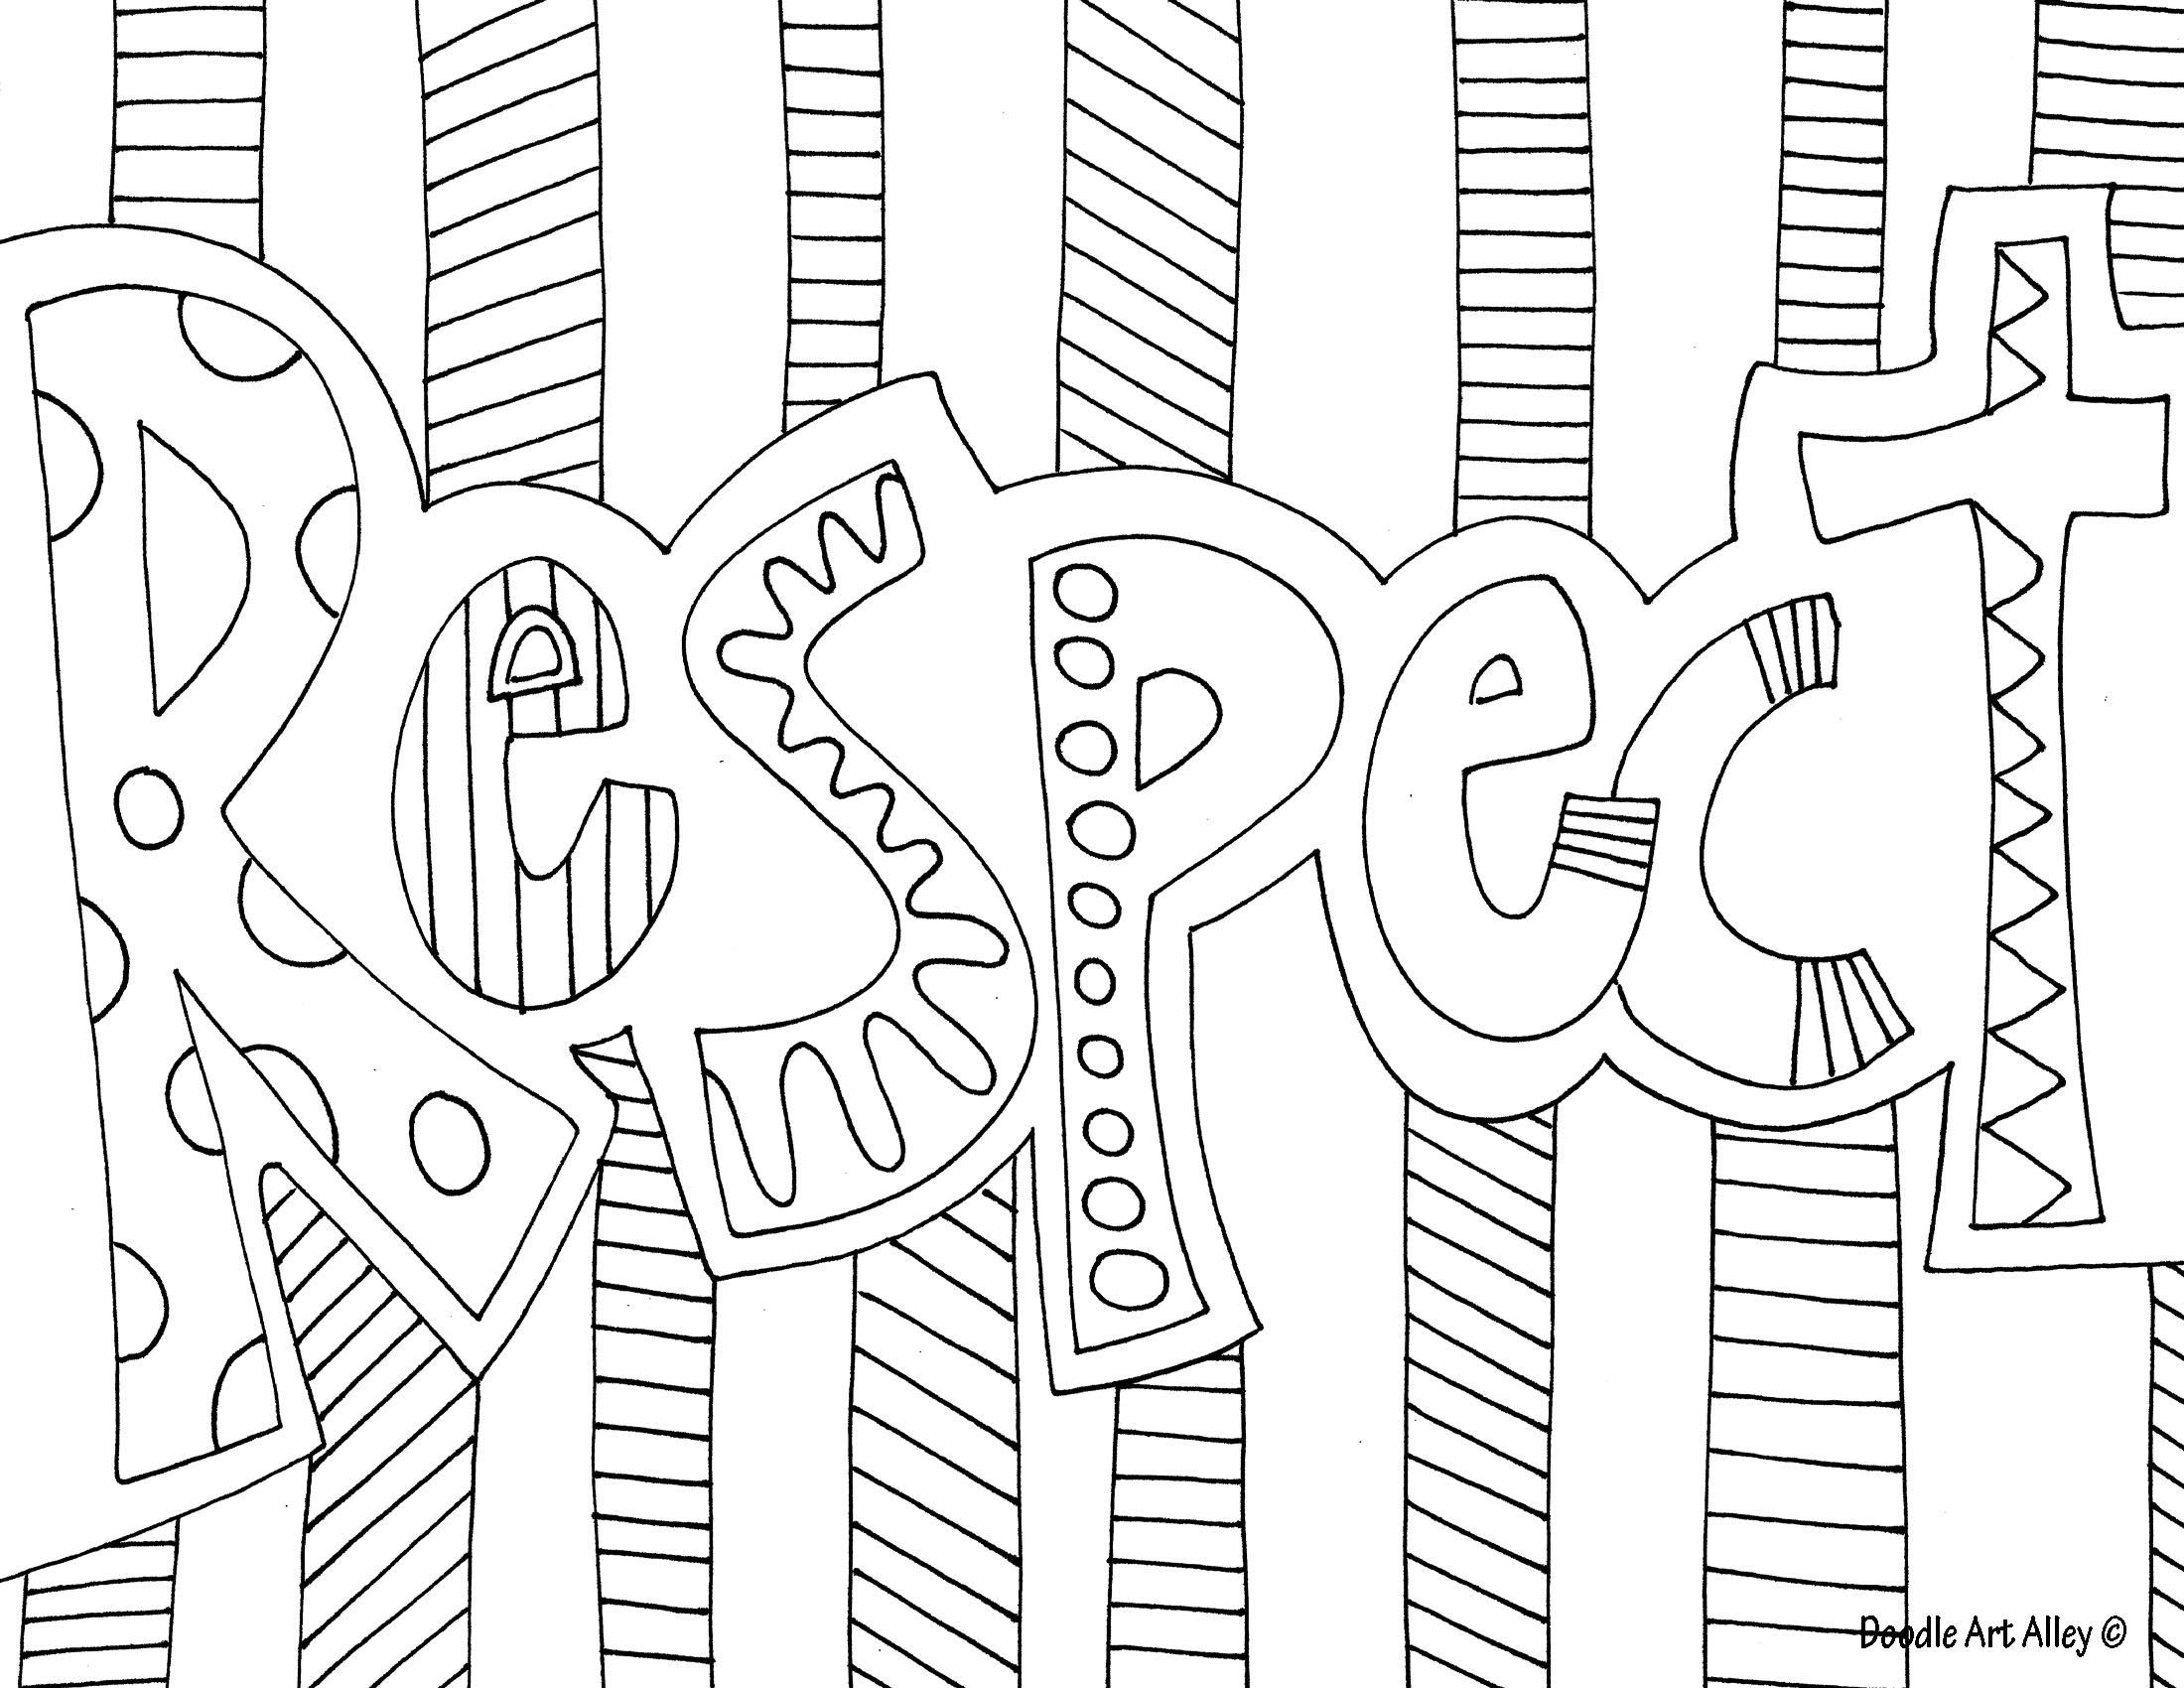 Call Back Coloring Pages From Classroom Doodles Quote Coloring Pages Coloring Pages Inspirational Coloring Pages To Print